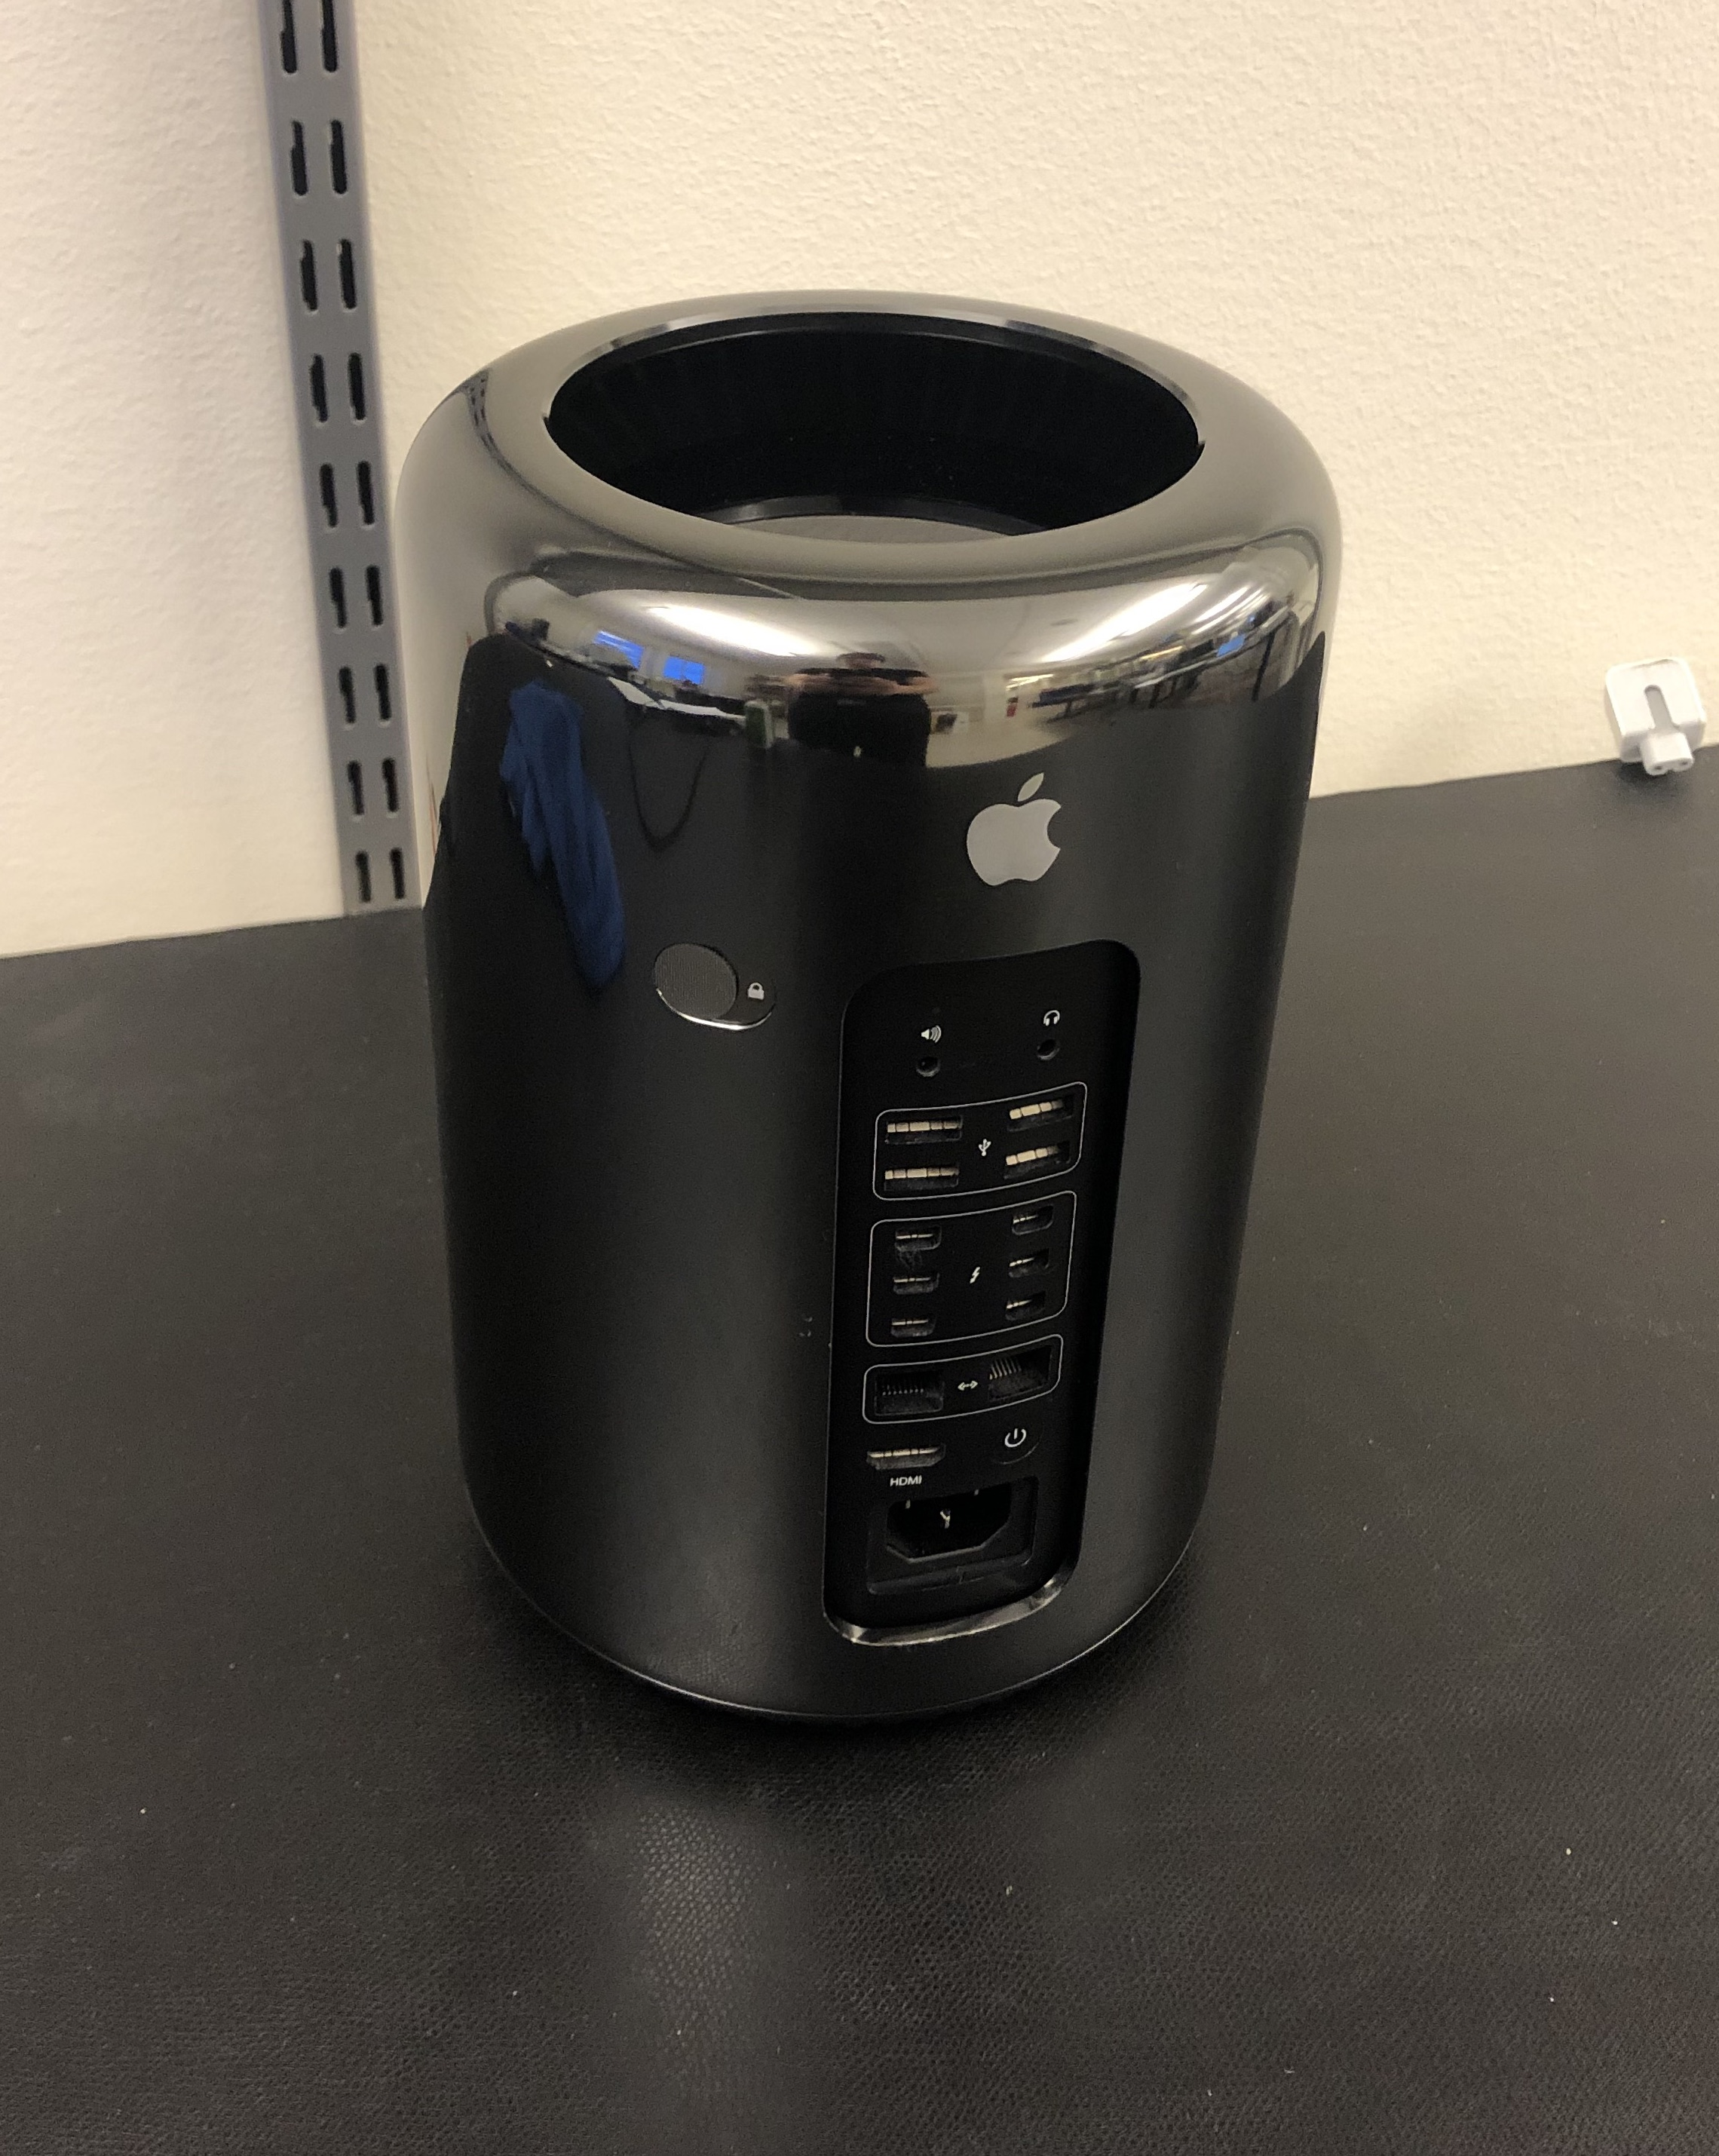 Mac Pro Late 2013 (Intel Quad-Core Xeon 3.7 GHz 12 GB RAM 256 GB SSD), 3,7 GHz Quad-Core Intel Xeon E5, 12 GB 1866 MHz DDR3, 256 GB SSD, bild 2